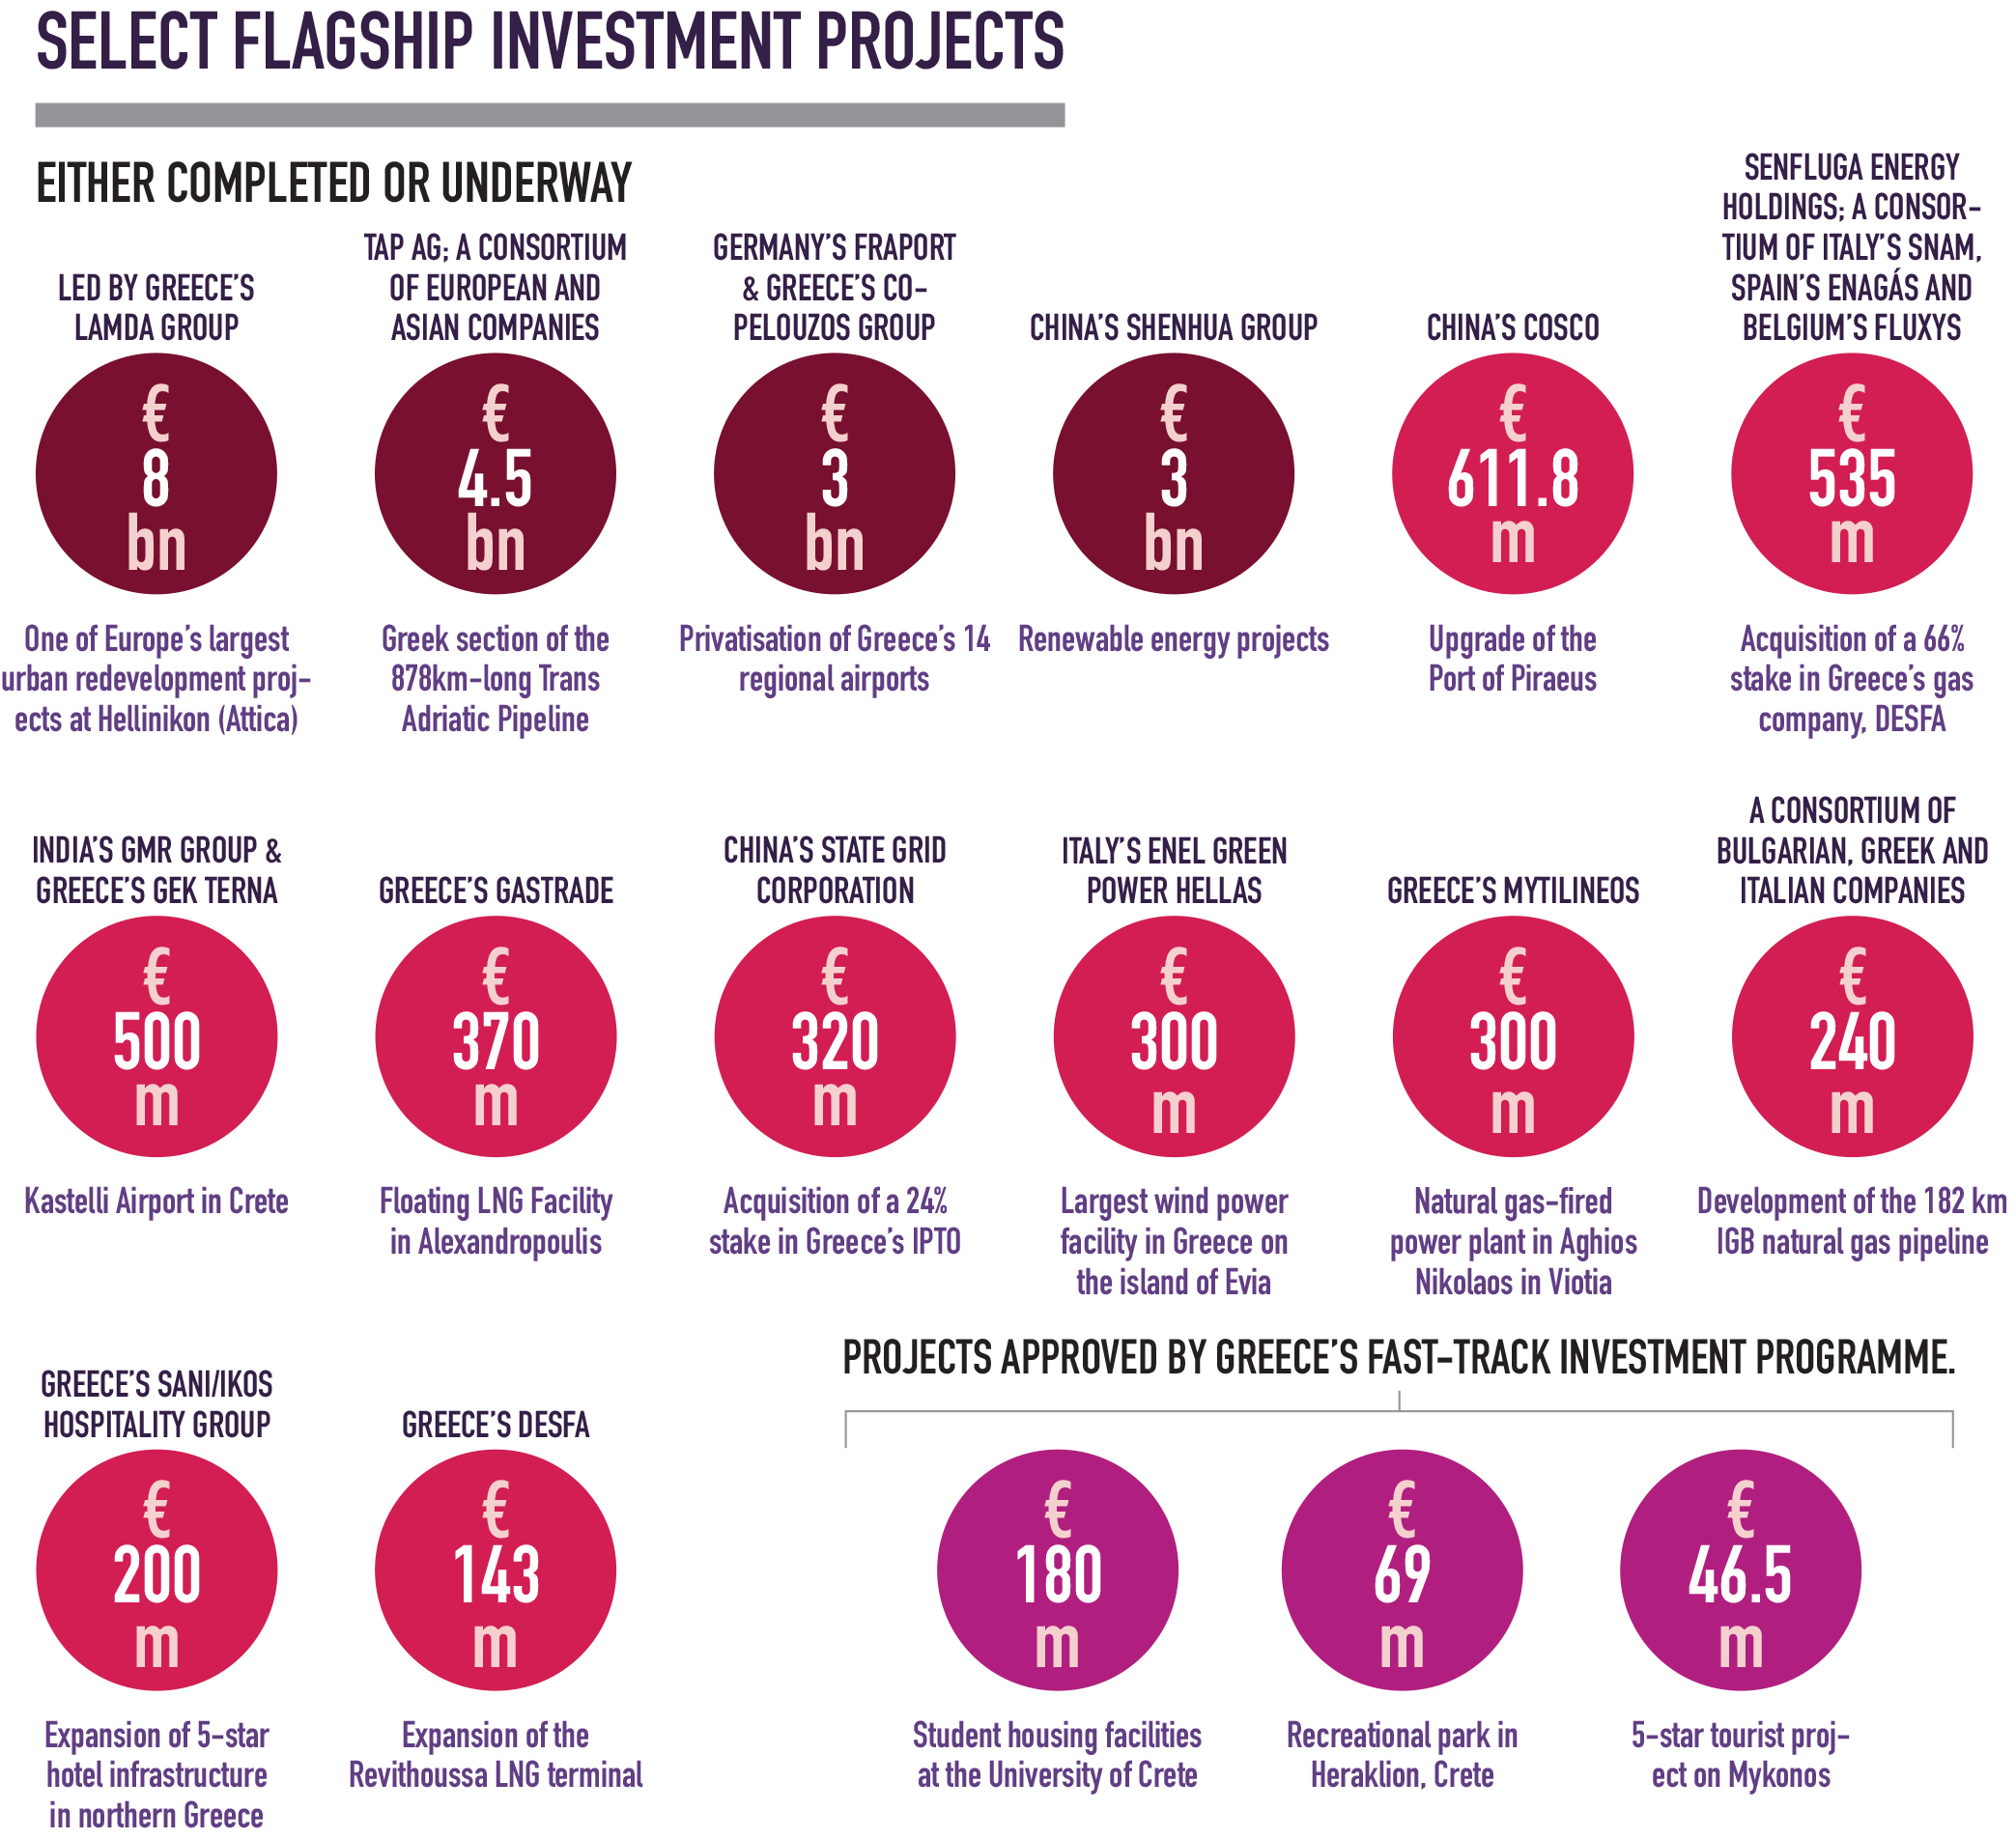 Select flagship investment projects